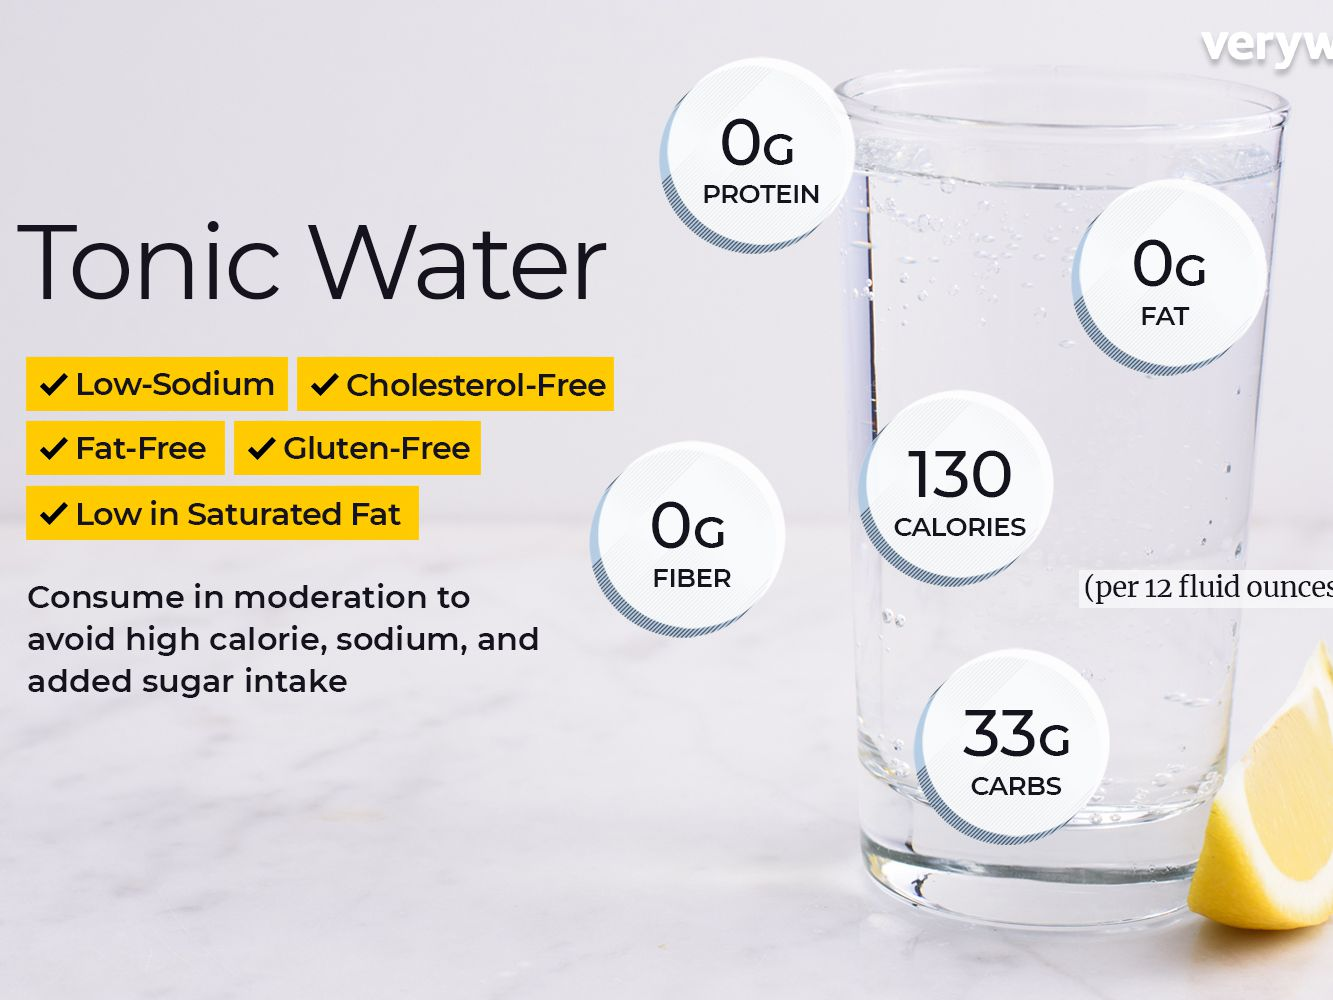 Tonic Water Nutrition Facts: Calories, Carbs, and Health Benefits